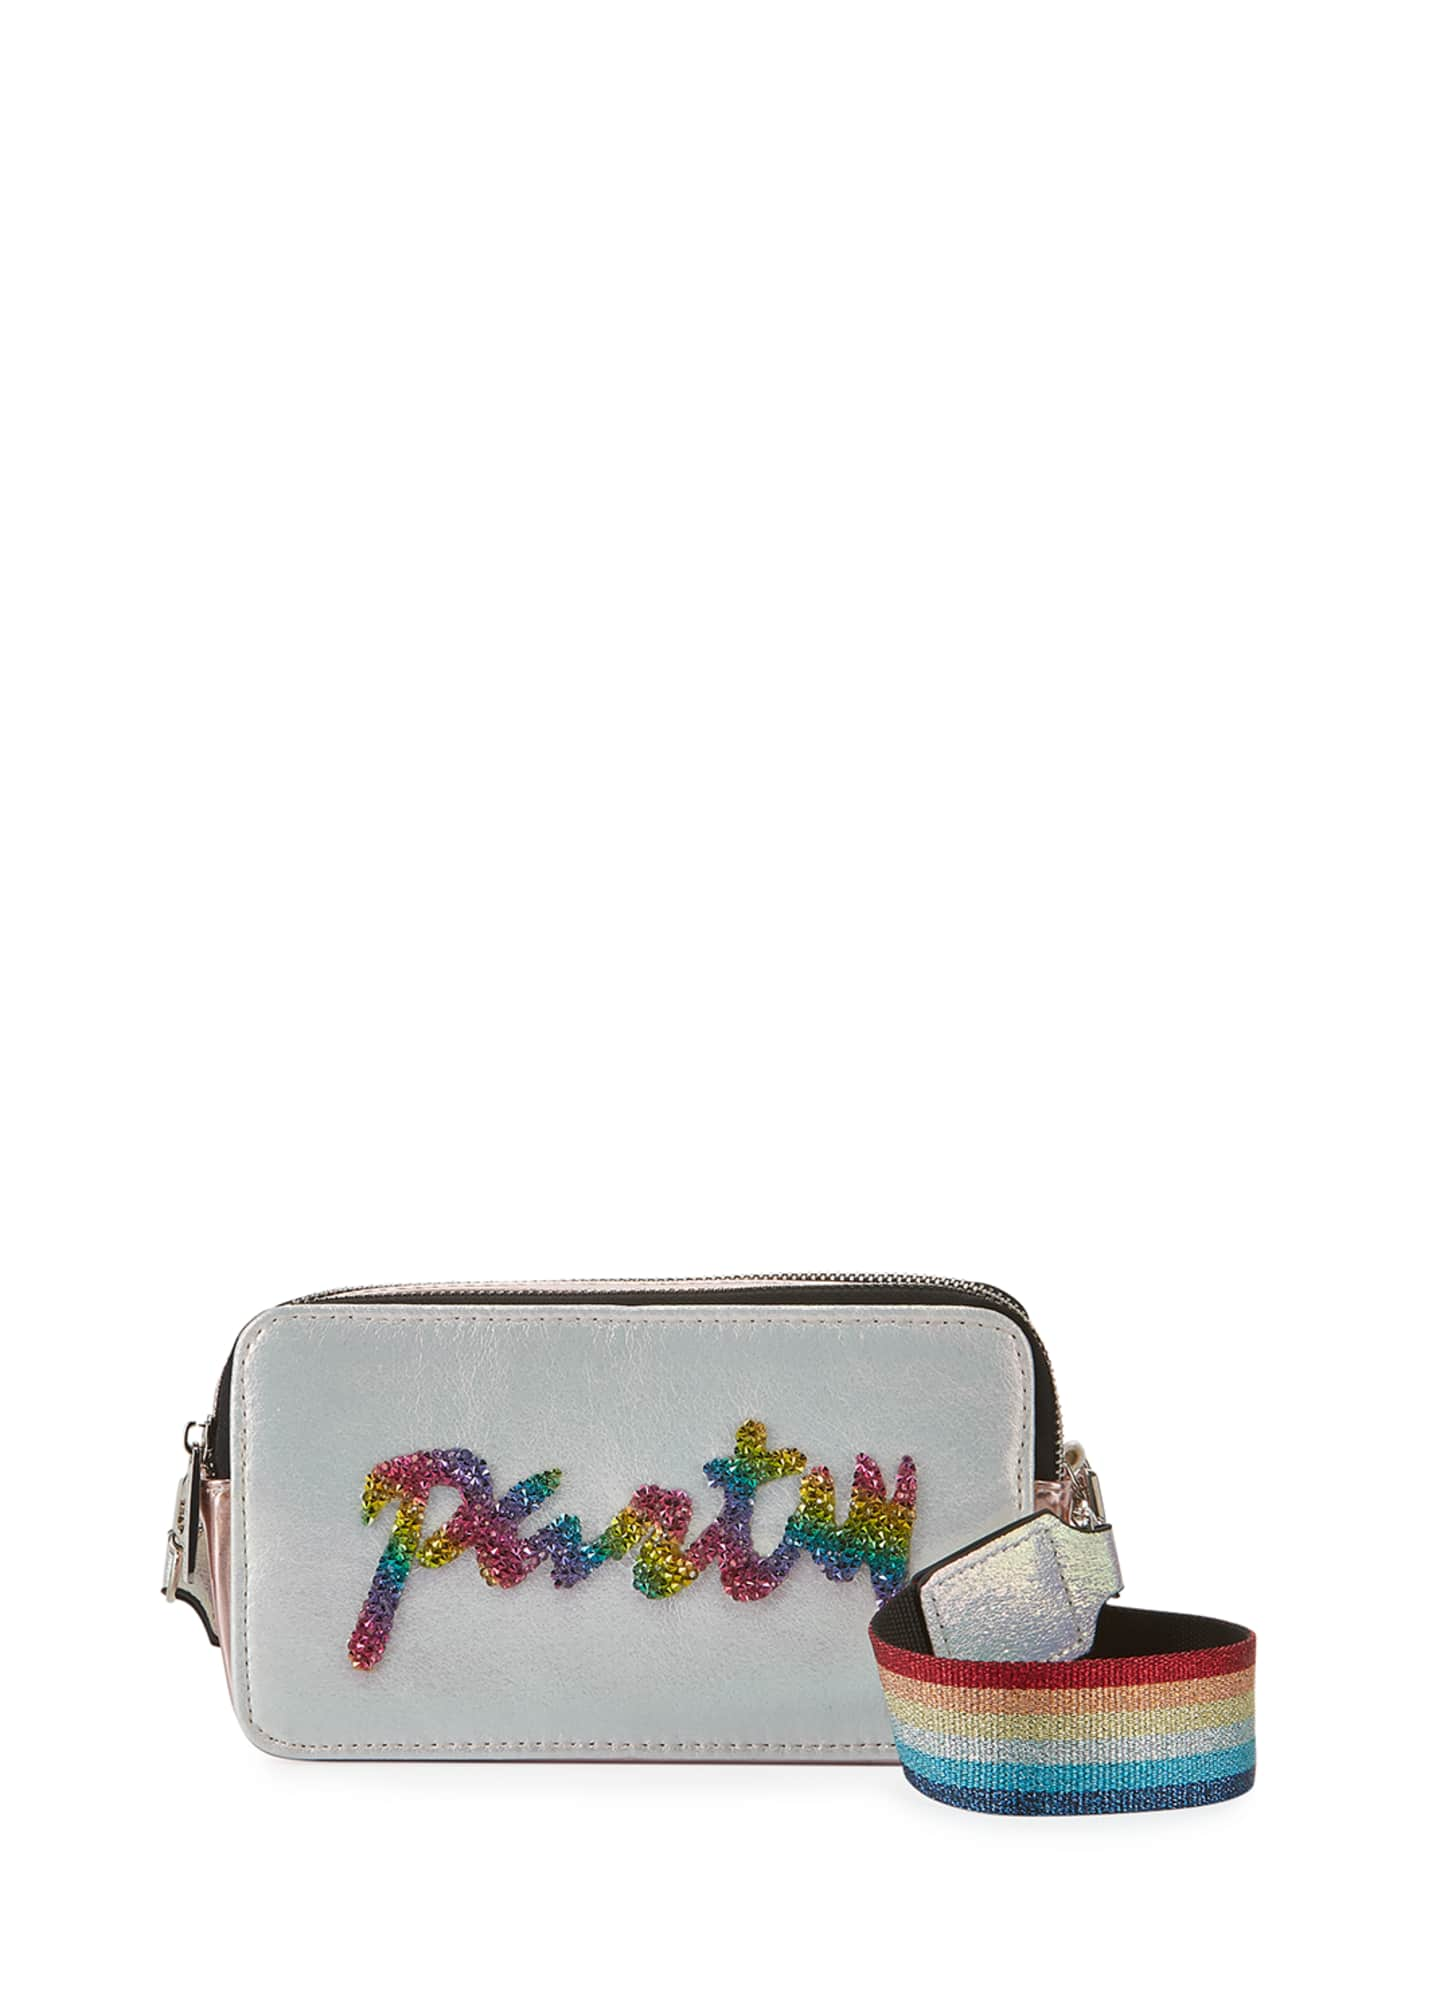 Image 1 of 3: Girl's Party Camera Bag w/ Rainbow Strap